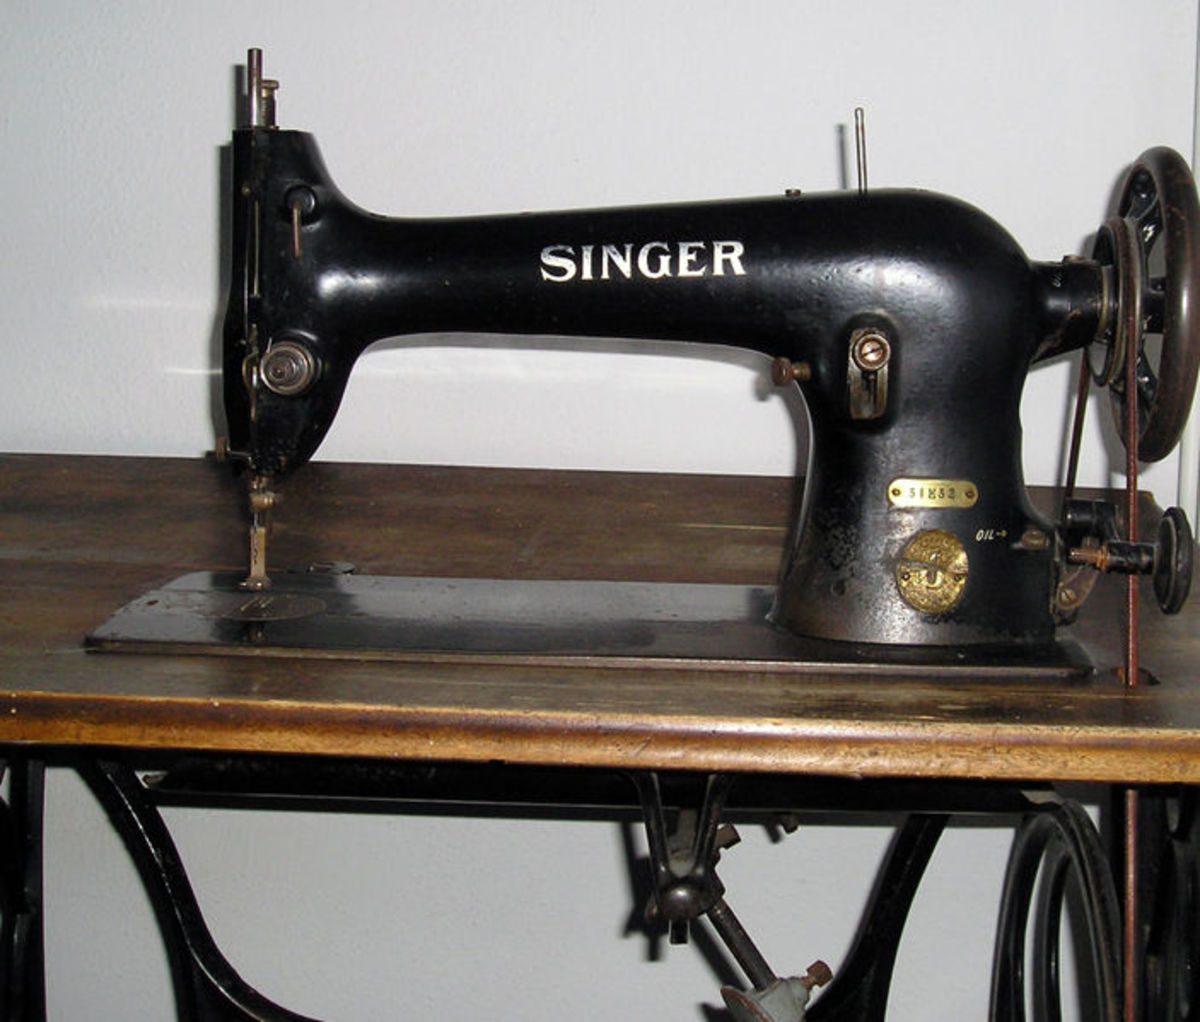 Singer sewing machine.